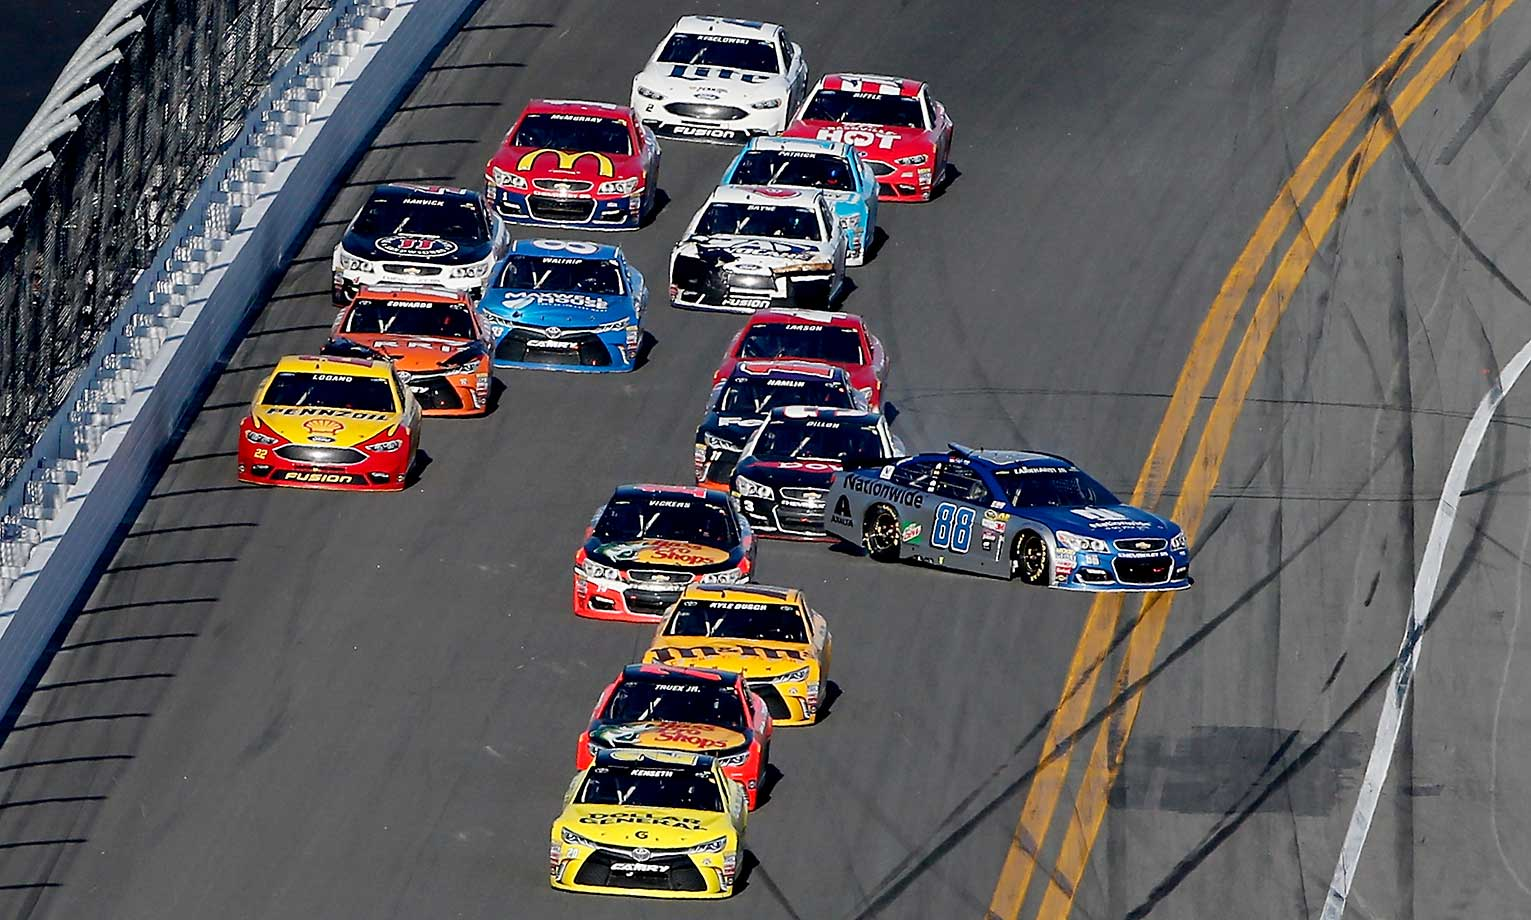 Race favorite Dale Earnhardt Jr. looses control of his car in the waning laps.